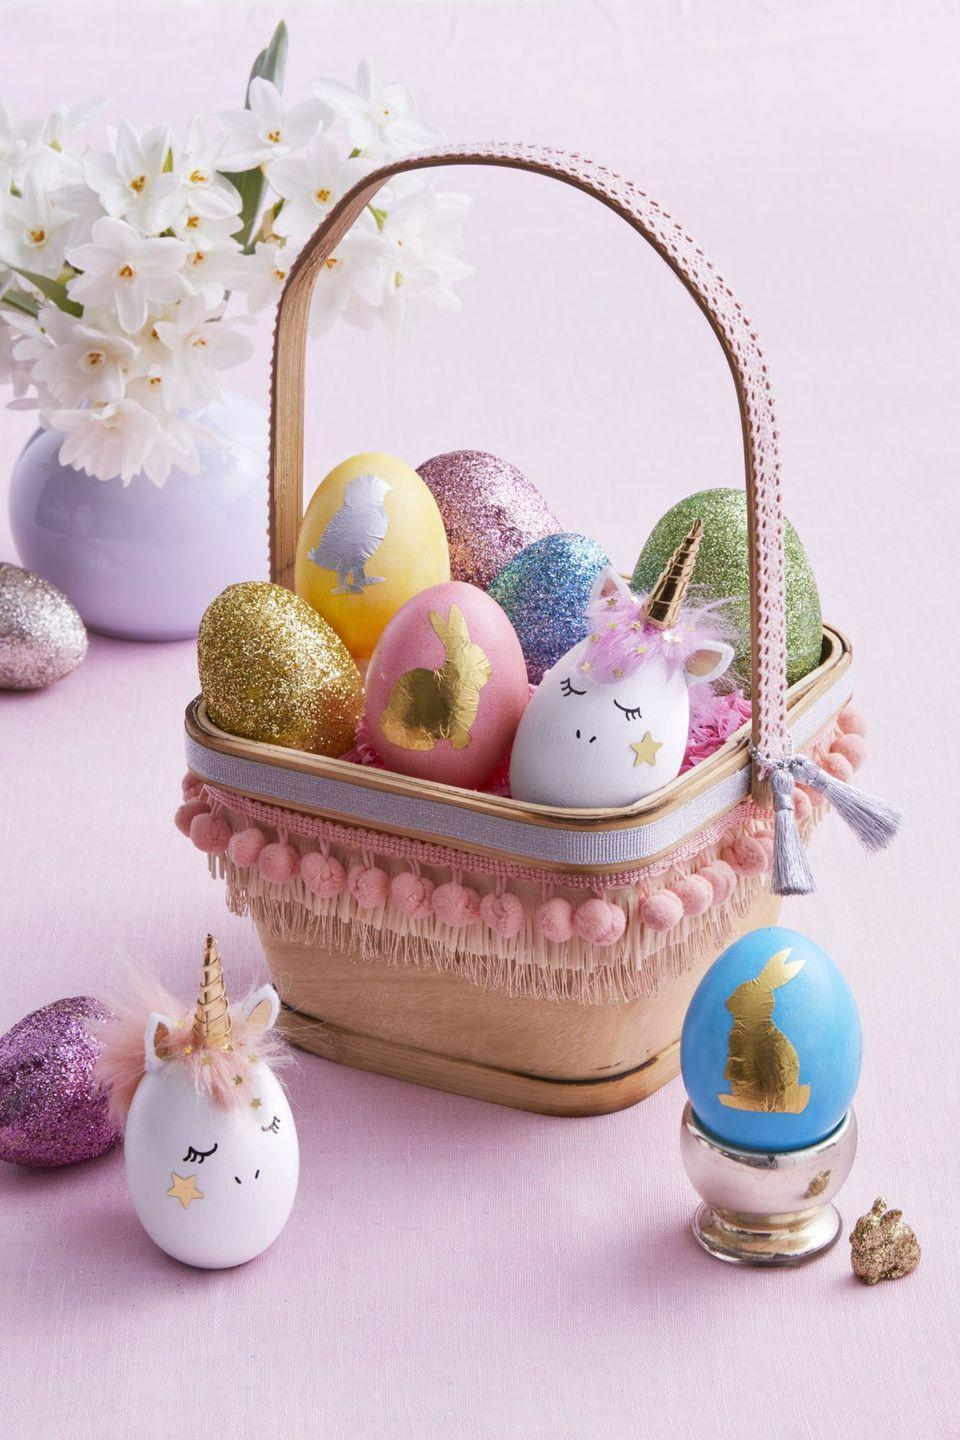 """<p>Make a plain square basket look magical with a few scraps of ribbon and trim, and fill with unicorn-inspired and sparkling Easter eggs.</p><p><strong>Lovely Unicorn:</strong> Paint a wooden egg white; let dry. Draw on face. Cut a mane from faux-fur trim, color in an egg dye bath, and attach (once dry) with fabric glue. Use templates to make felt ears and a gold paper horn; assemble and glue to egg. Wrap a 3 x 1/8-in. strip of gold paper around horn; secure with glue. Glue star confetti to cheek and hair.</p><p><strong>Shiny Silhouette:</strong> Use the templates to carefully cut a chick or bunny from a foil candy wrapper. Adhere to dyed egg with Mod Podge. Use a damp cotton swab to gently wipe clean the foil shape; let dry.</p><p><strong>Dazzling Glitter Egg:</strong> Try this trick on basic plastic eggs: Lightly sand the outside, brush on glue, cover in glitter, and let dry.</p><p><strong><em><a href=""""https://www.womansday.com/home/crafts-projects/a18837631/easter-egg-templates/"""" rel=""""nofollow noopener"""" target=""""_blank"""" data-ylk=""""slk:Get the templates here."""" class=""""link rapid-noclick-resp"""">Get the templates here.</a></em></strong></p><p><strong><a class=""""link rapid-noclick-resp"""" href=""""https://www.amazon.com/Supplies-Resistant-Polyester-Eyeshadow-Assorted/dp/B076J9RD8P/?tag=syn-yahoo-20&ascsubtag=%5Bartid%7C10070.g.1751%5Bsrc%7Cyahoo-us"""" rel=""""nofollow noopener"""" target=""""_blank"""" data-ylk=""""slk:SHOP GLITTER"""">SHOP GLITTER</a></strong></p>"""